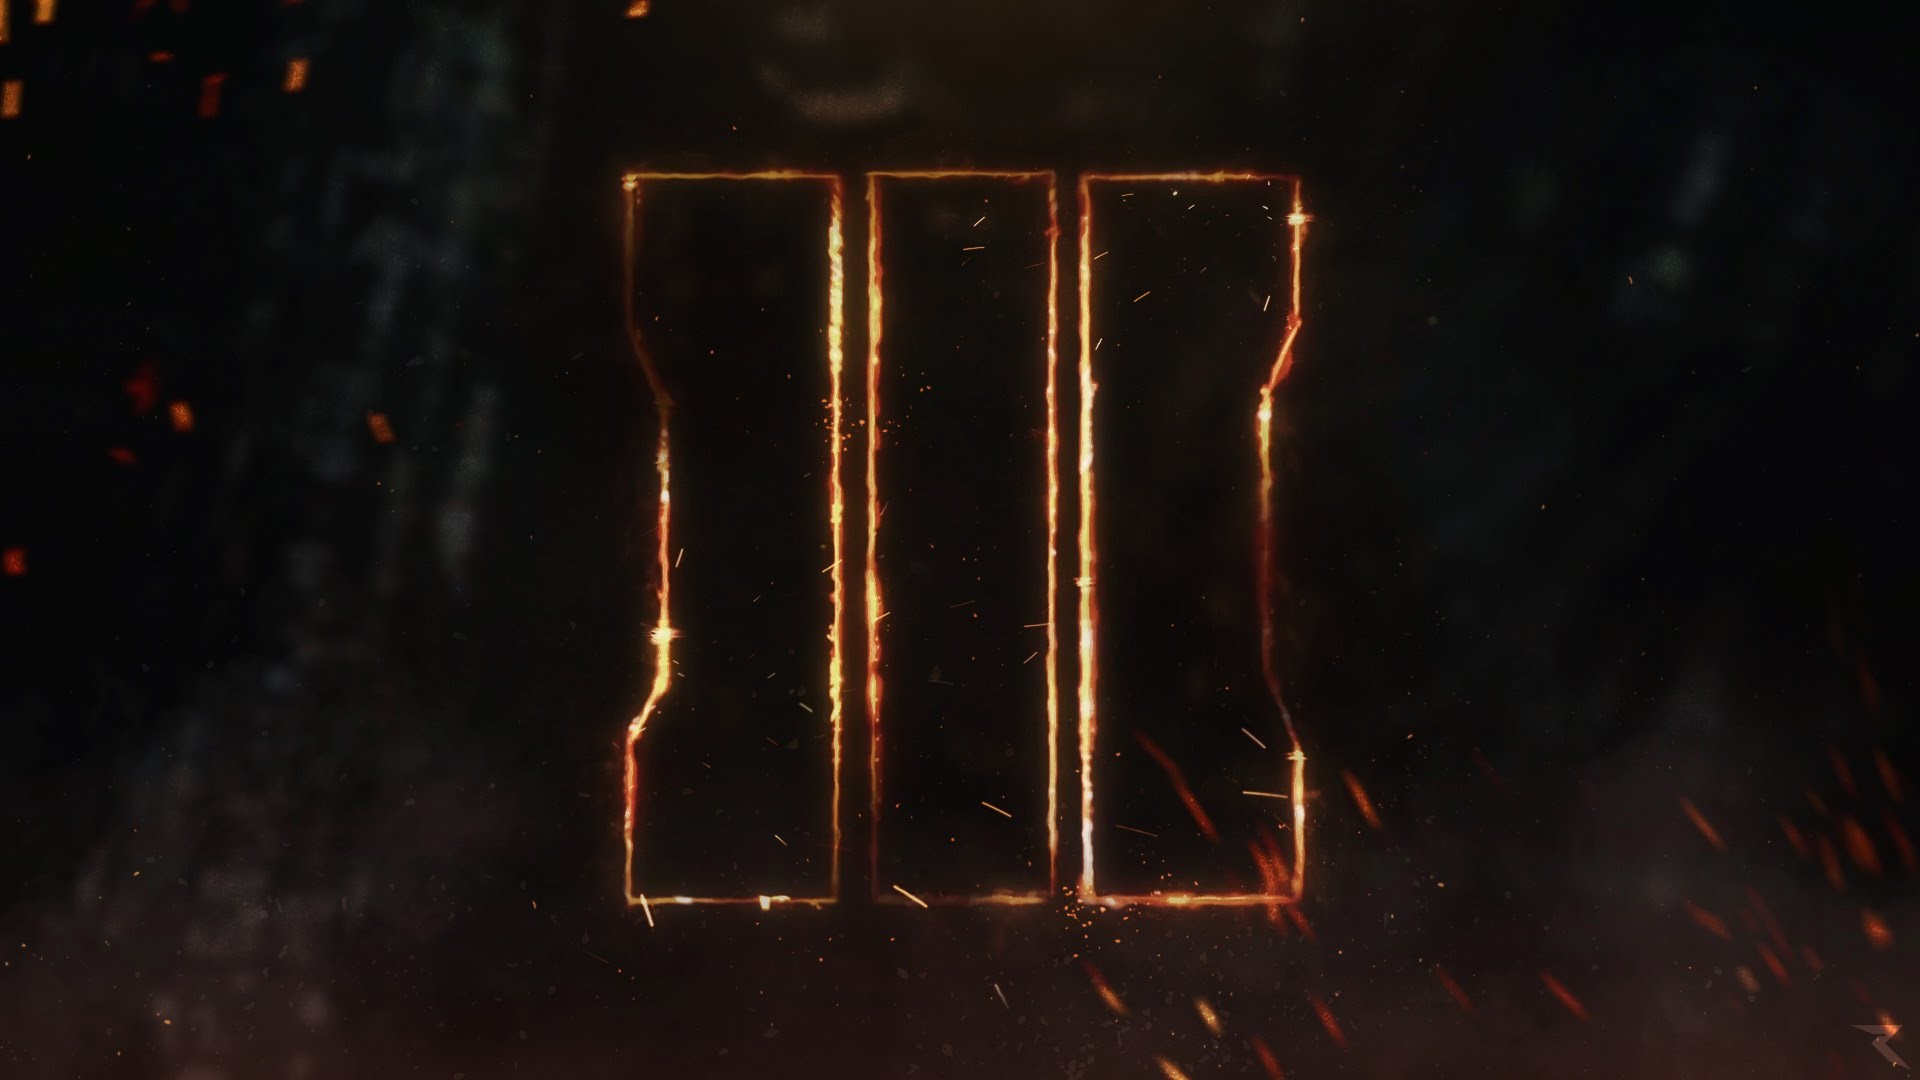 1920x1080 Free Call Of Duty Black Ops 3 Wallpaper